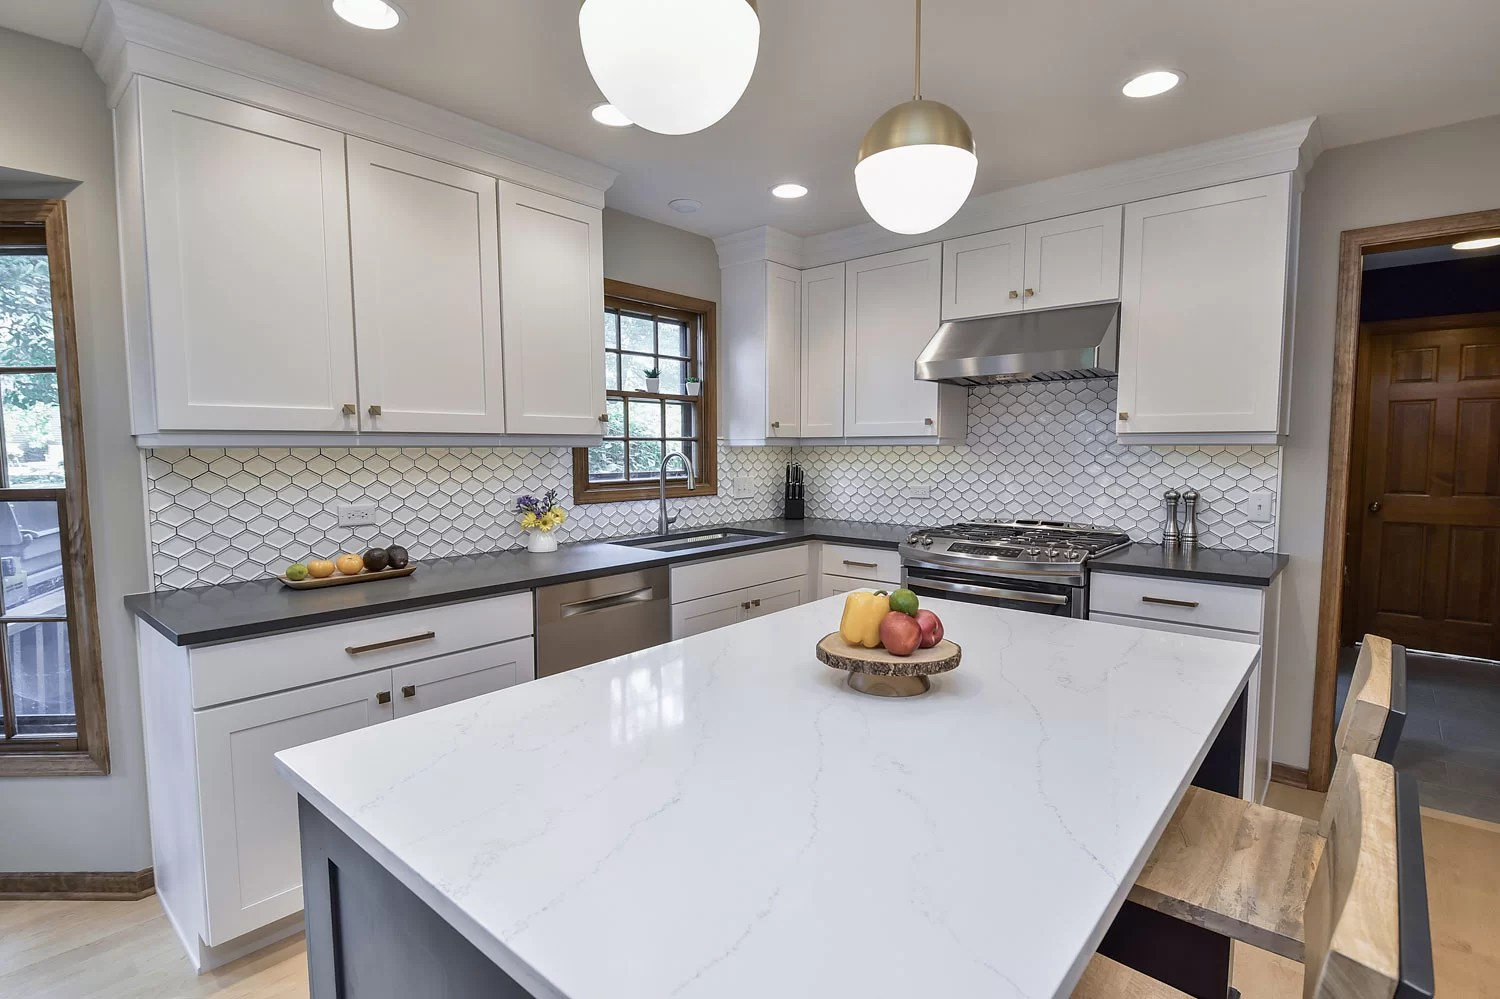 Justin & Carina's Kitchen Remodel Pictures | Home ... on Kitchen Remodeling Ideas  id=34365